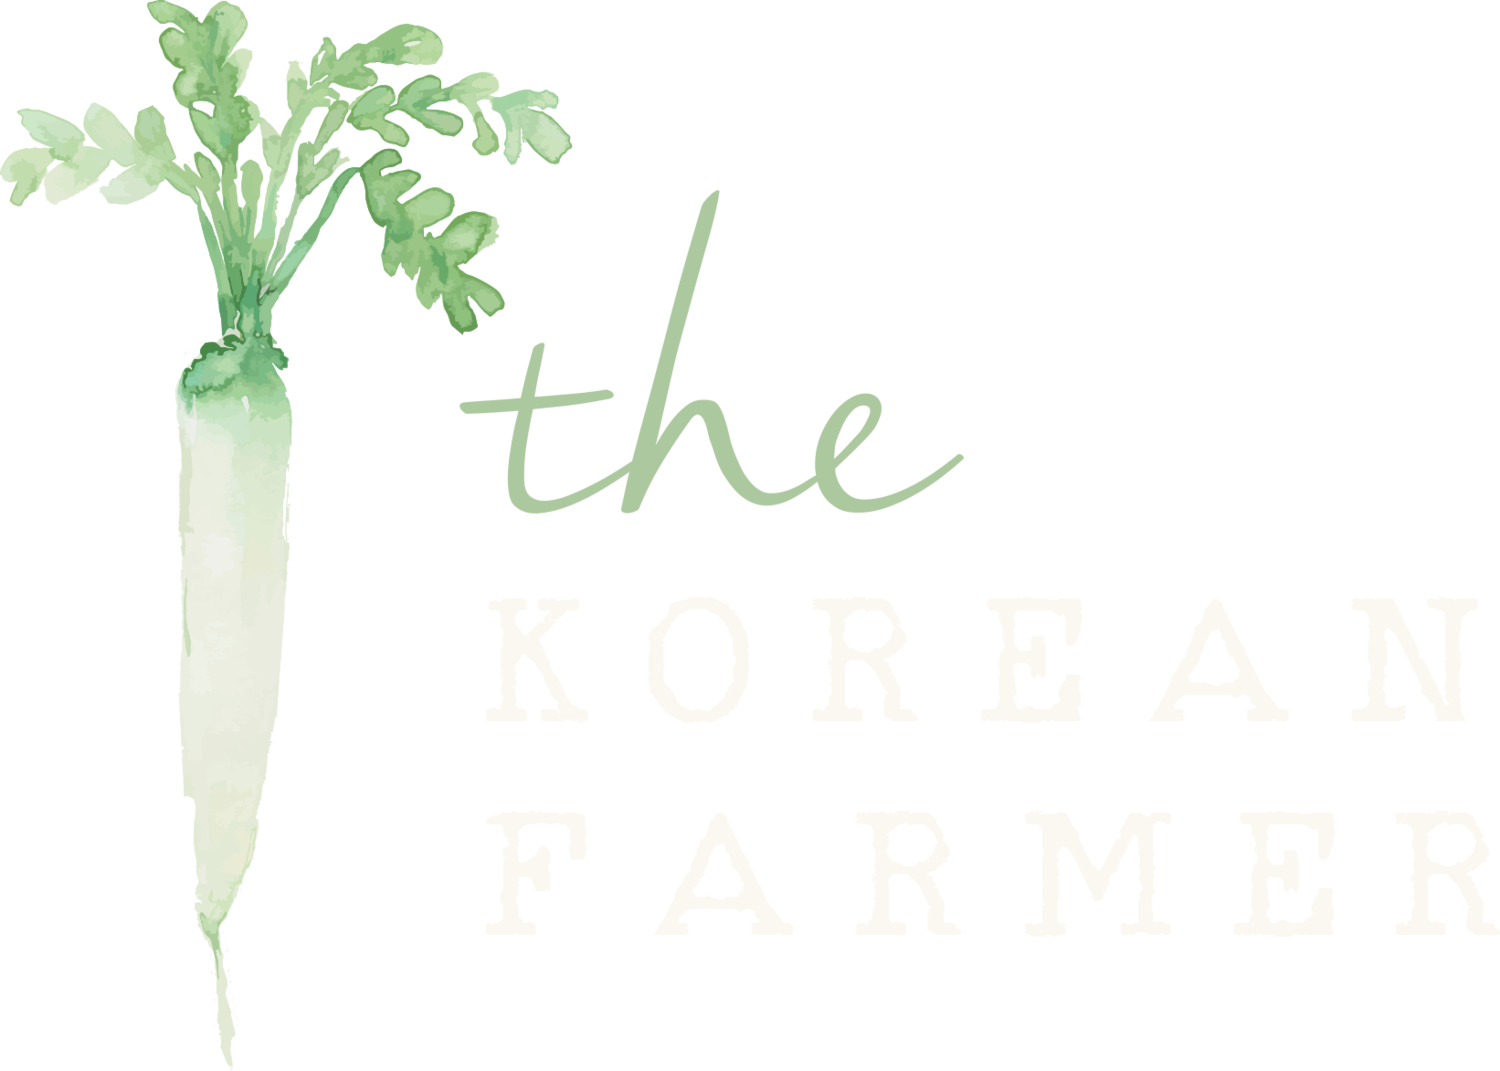 The Korean Farmer